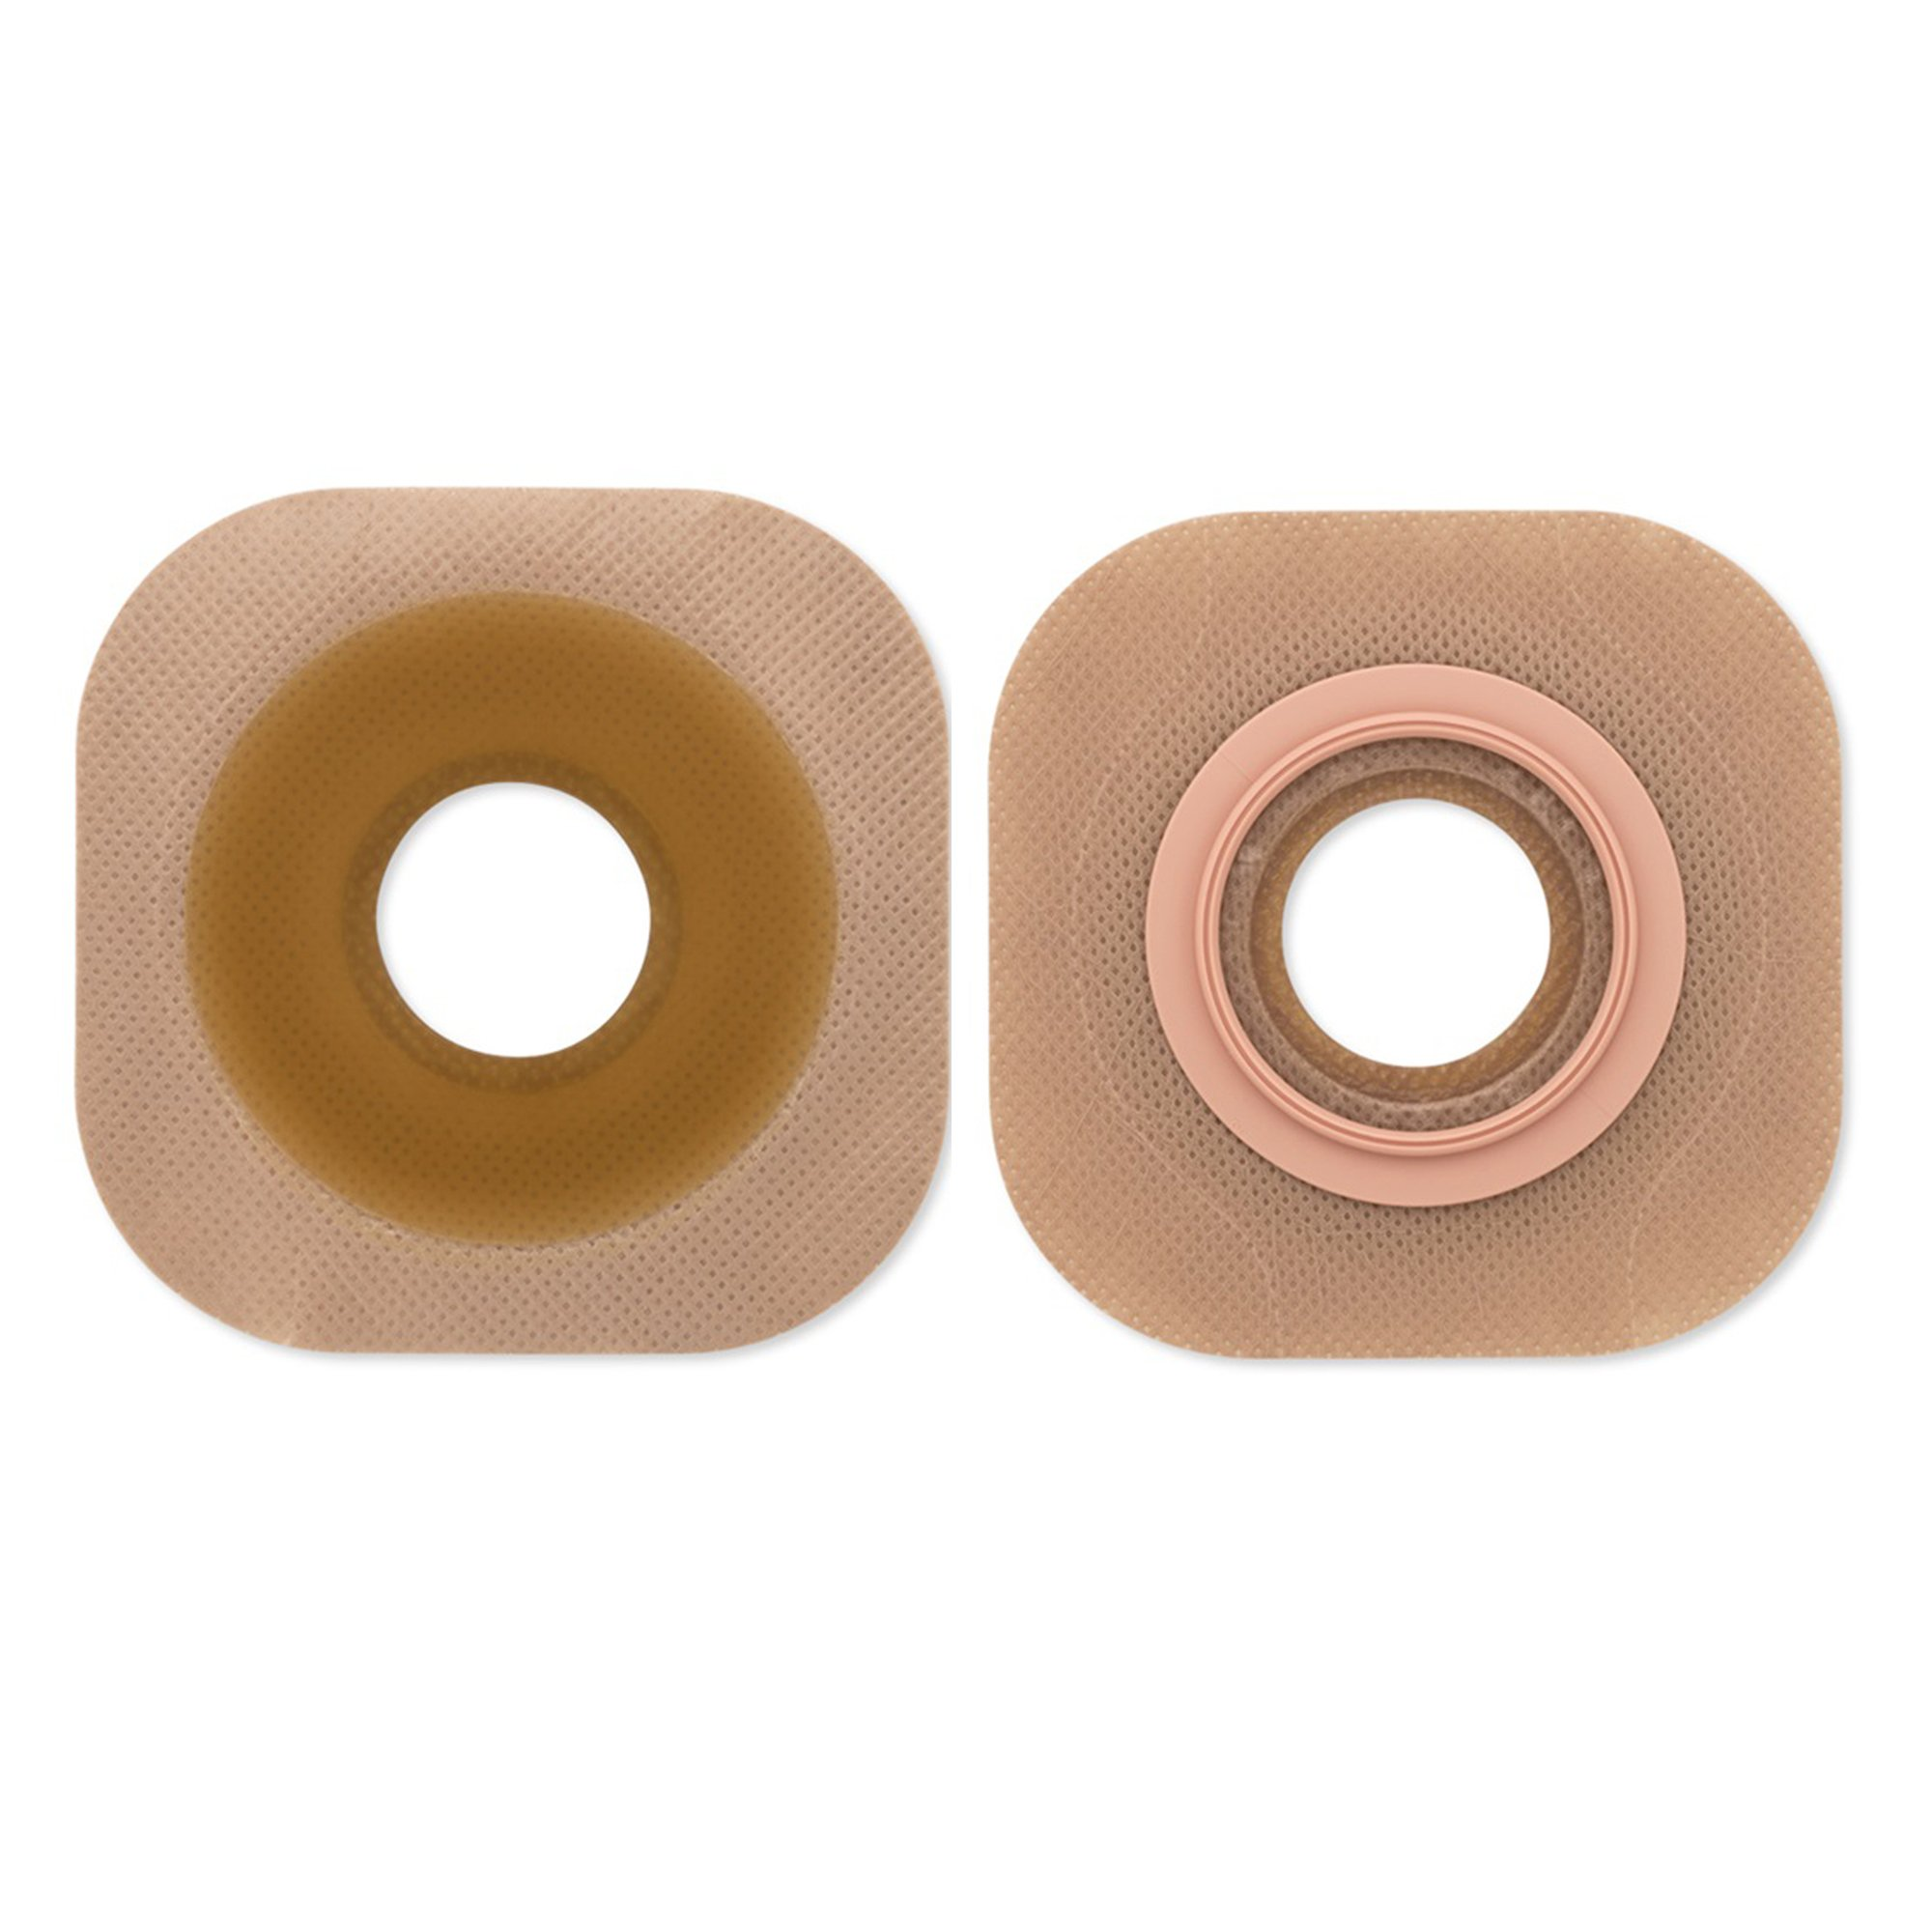 FlexTend Trim to Fit Ostomy Barrier, Green Code System, Up to 1-1/4 Inch Opening, 15602, 1 Each